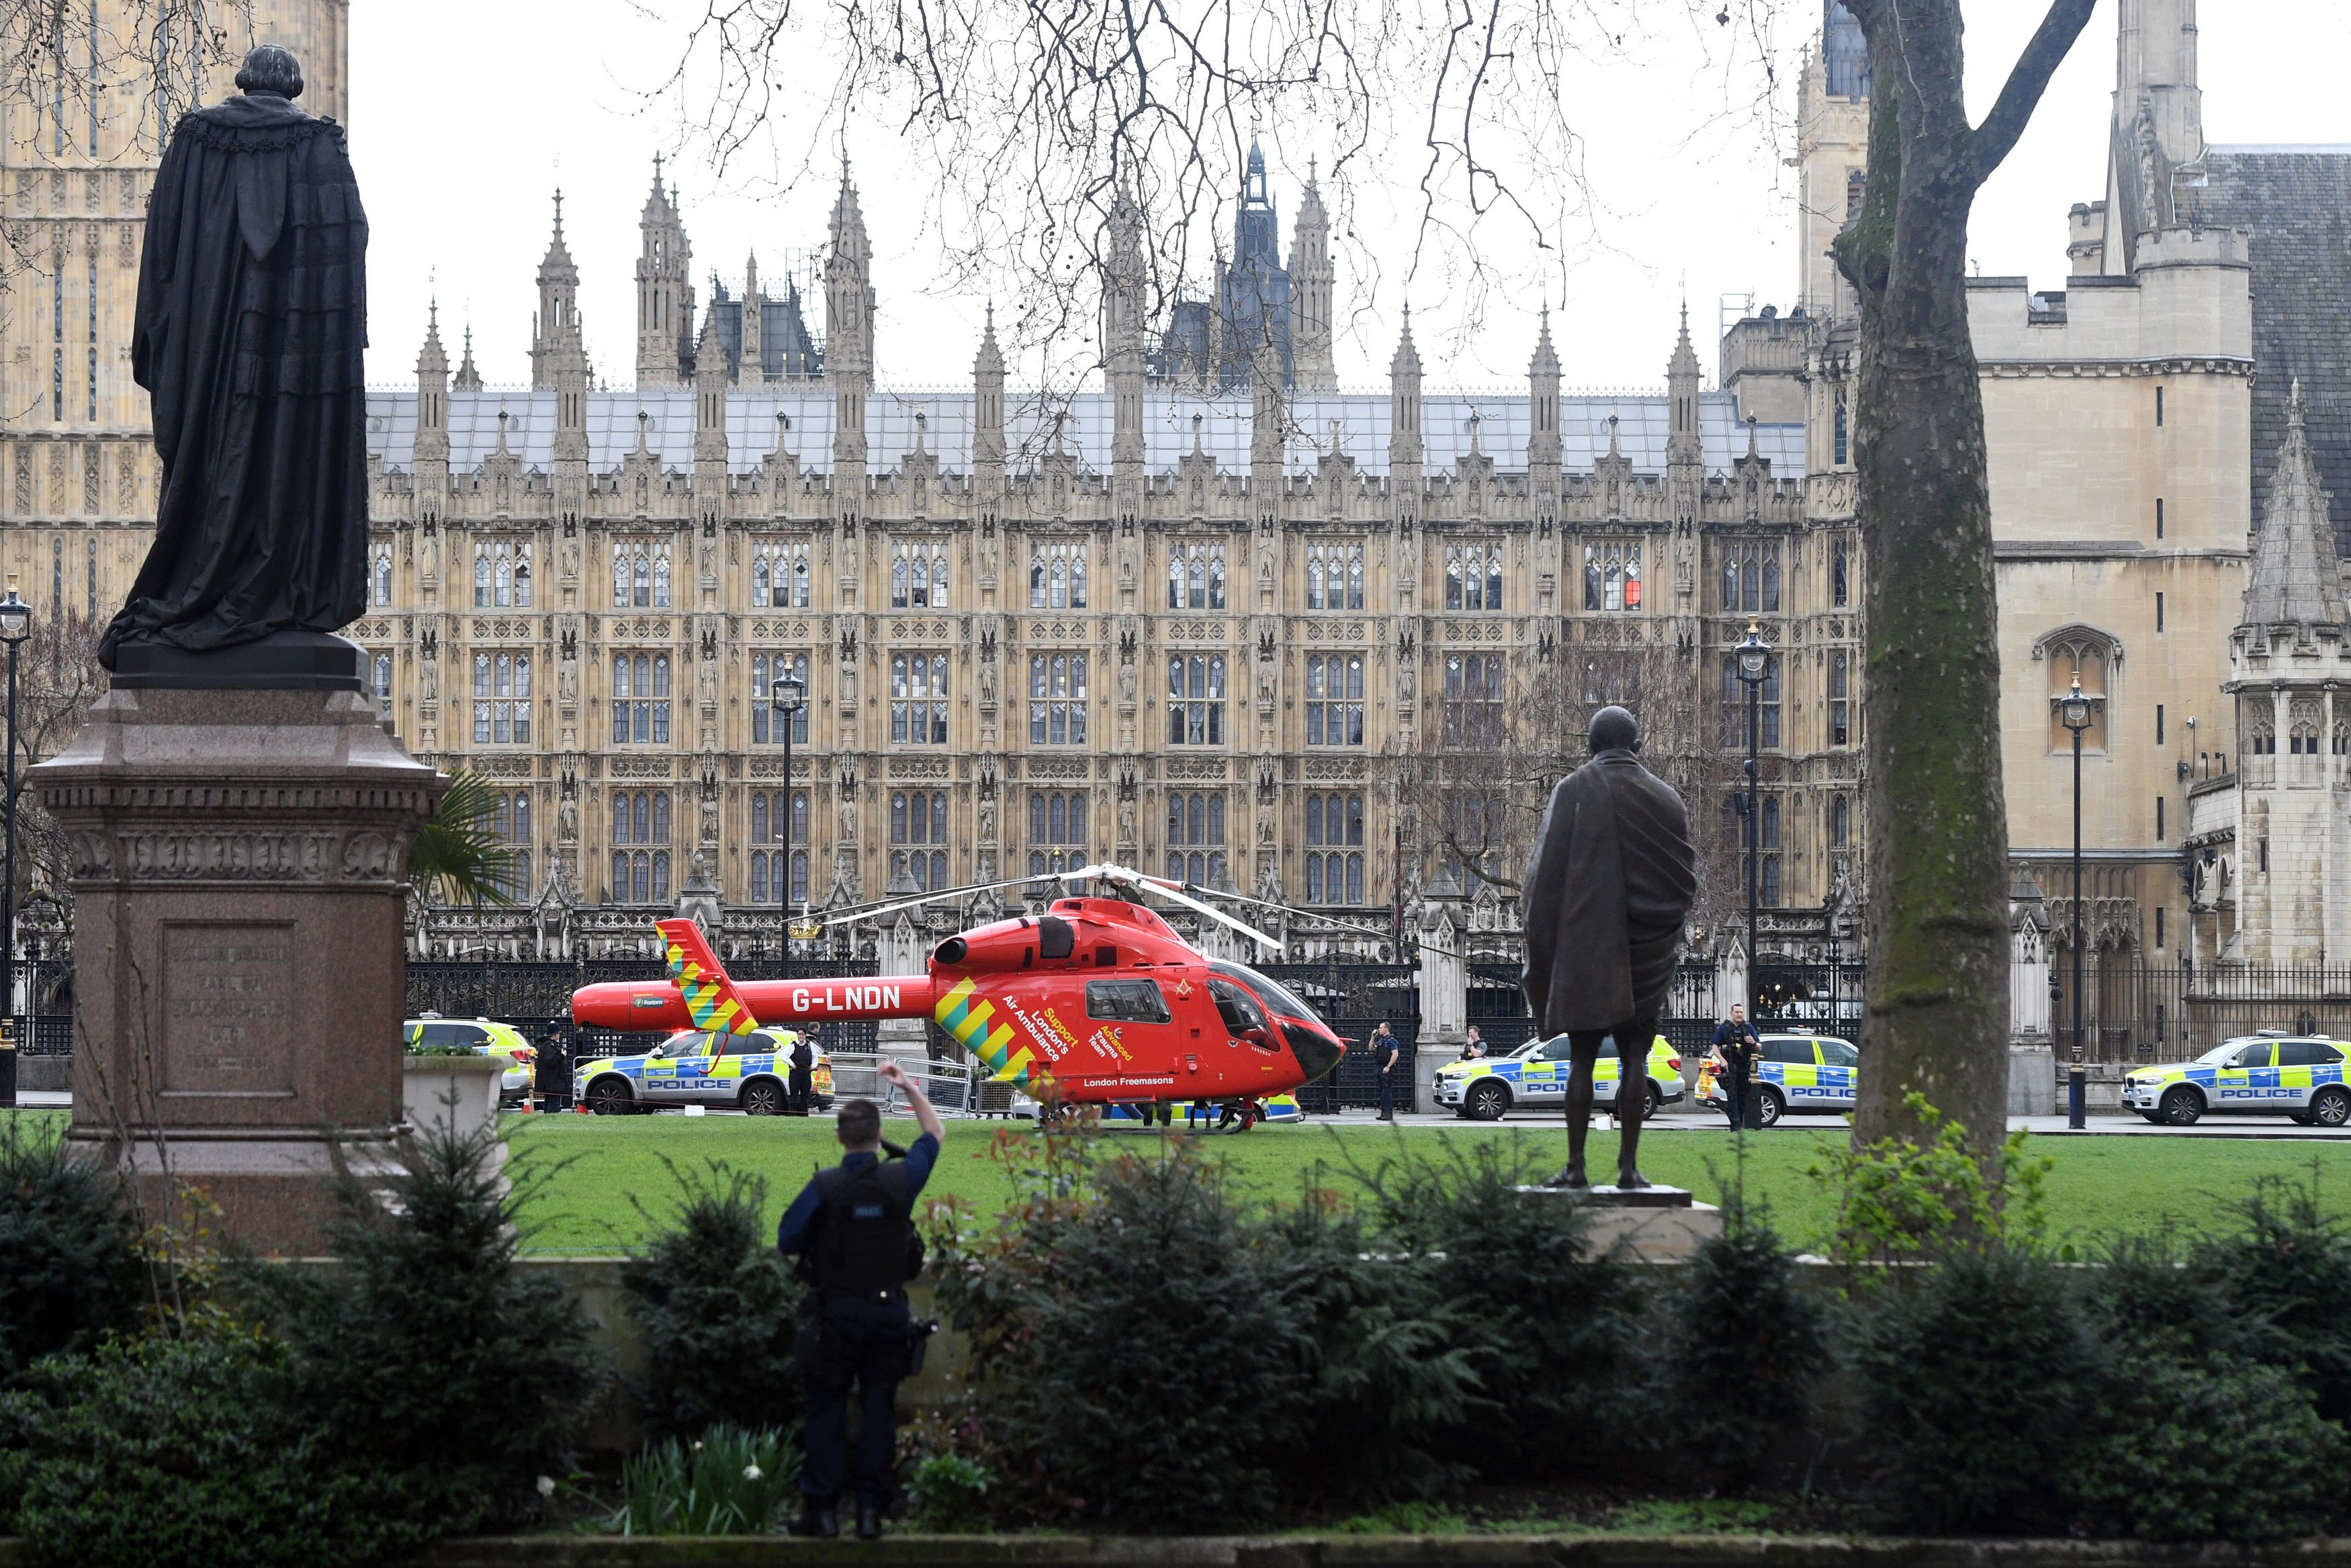 An Air Ambulance outside the Palace of Westminster after sounds similar to gunfire have been heard, on March 22, 2017.